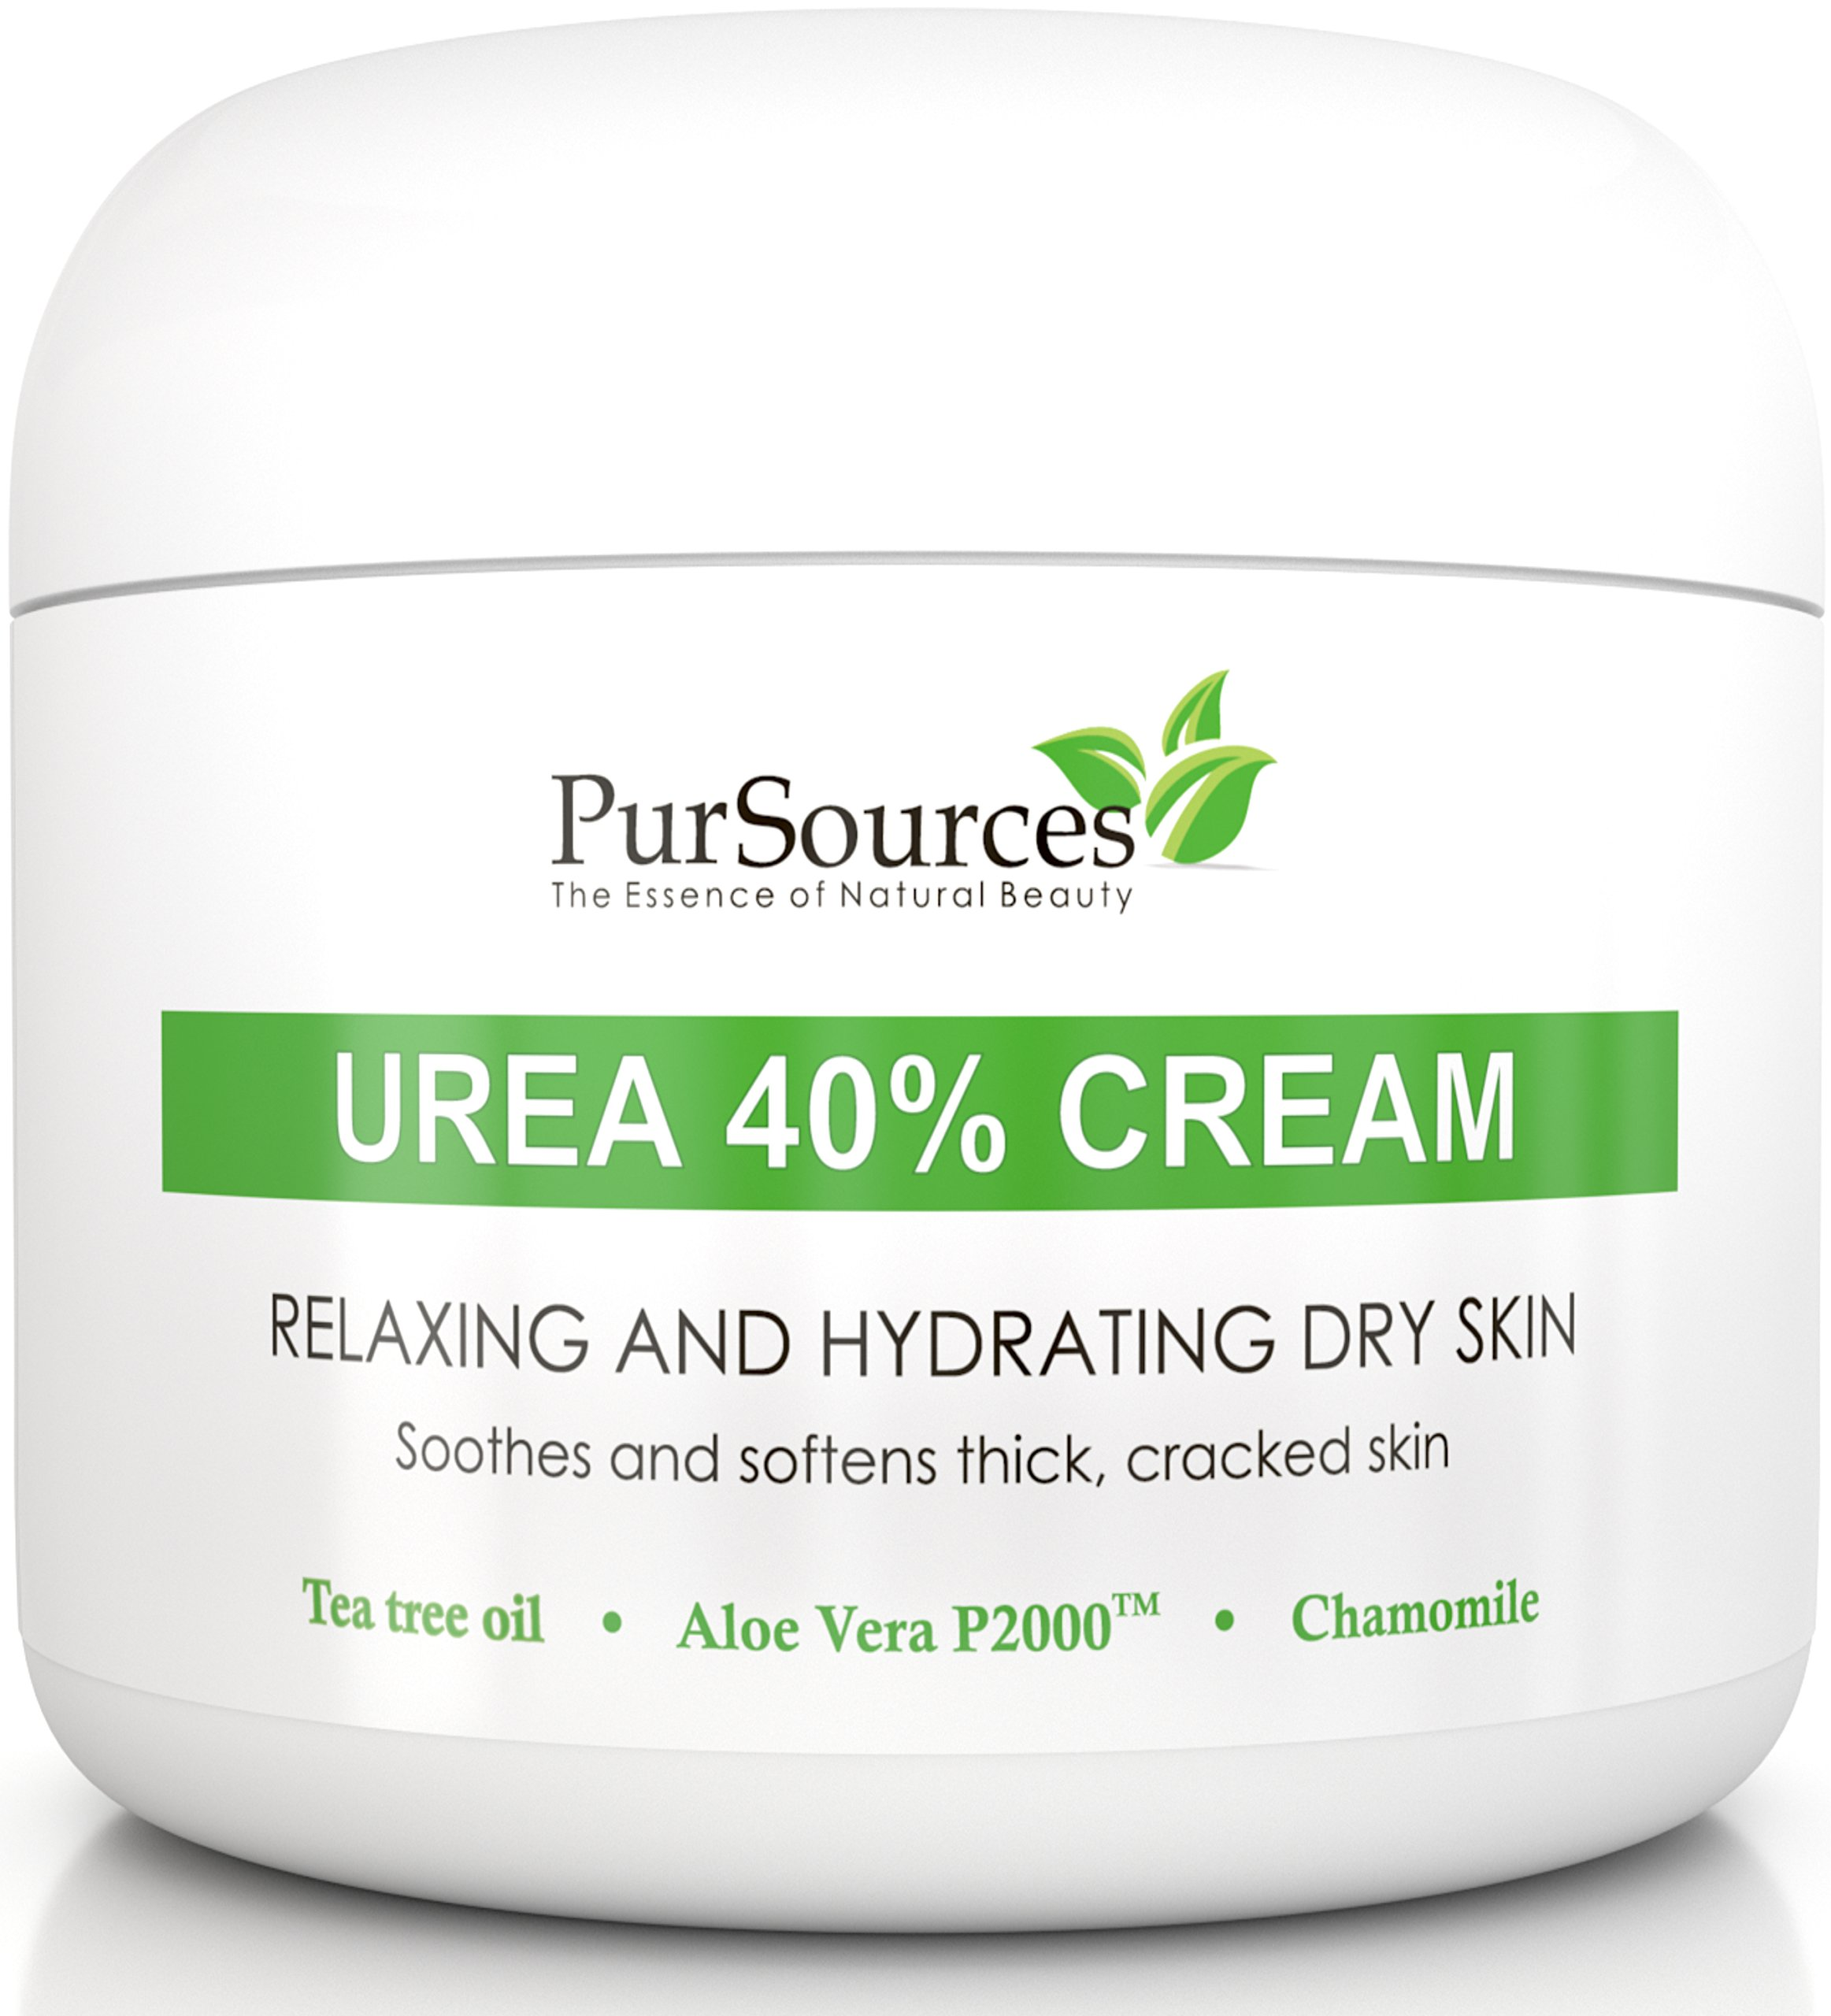 PurSources Urea 40% Foot Cream 4 oz - Best Callus Remover - Moisturizes & Rehydrates Thick, Cracked, Rough, Dead & Dry Skin - For Feet, Elbows and Hands + Free Pumice Stone - 100% Money Back Guarantee